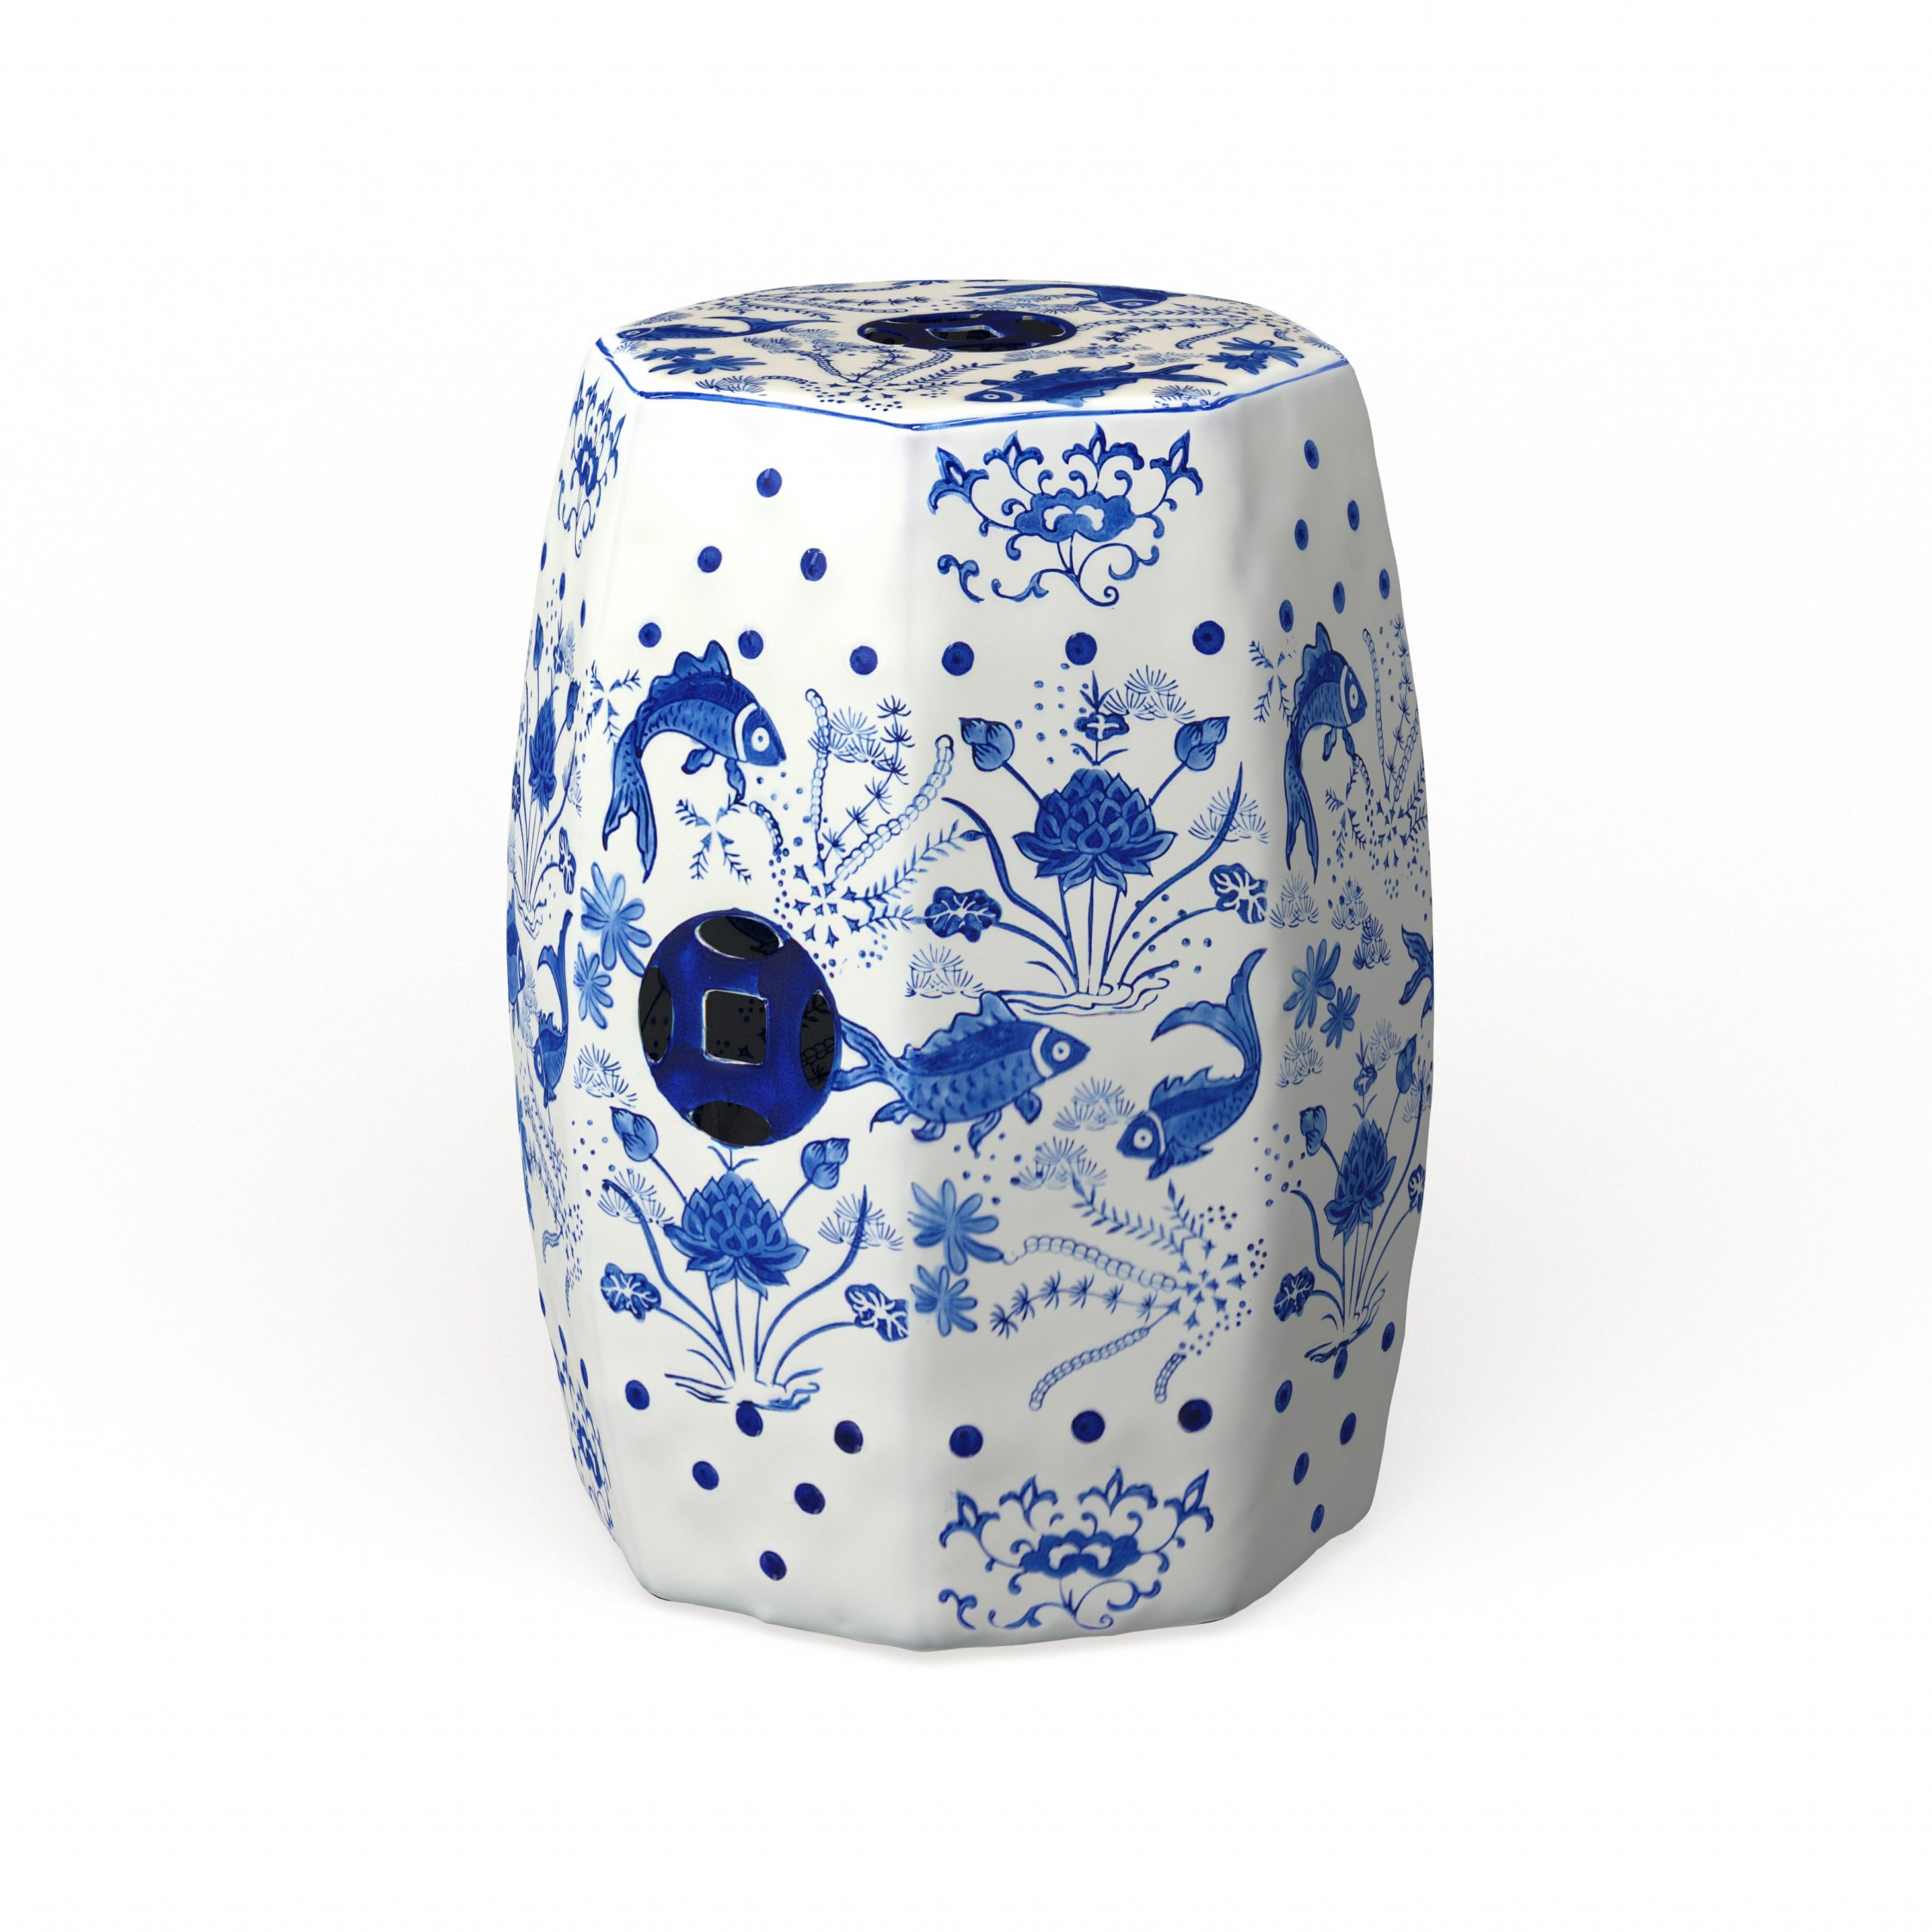 Most Popular Renee Porcelain Garden Stools Throughout Safavieh Cloud 9 Chinoiserie Blue Koi Ceramic Decorative Garden Stool (View 30 of 30)